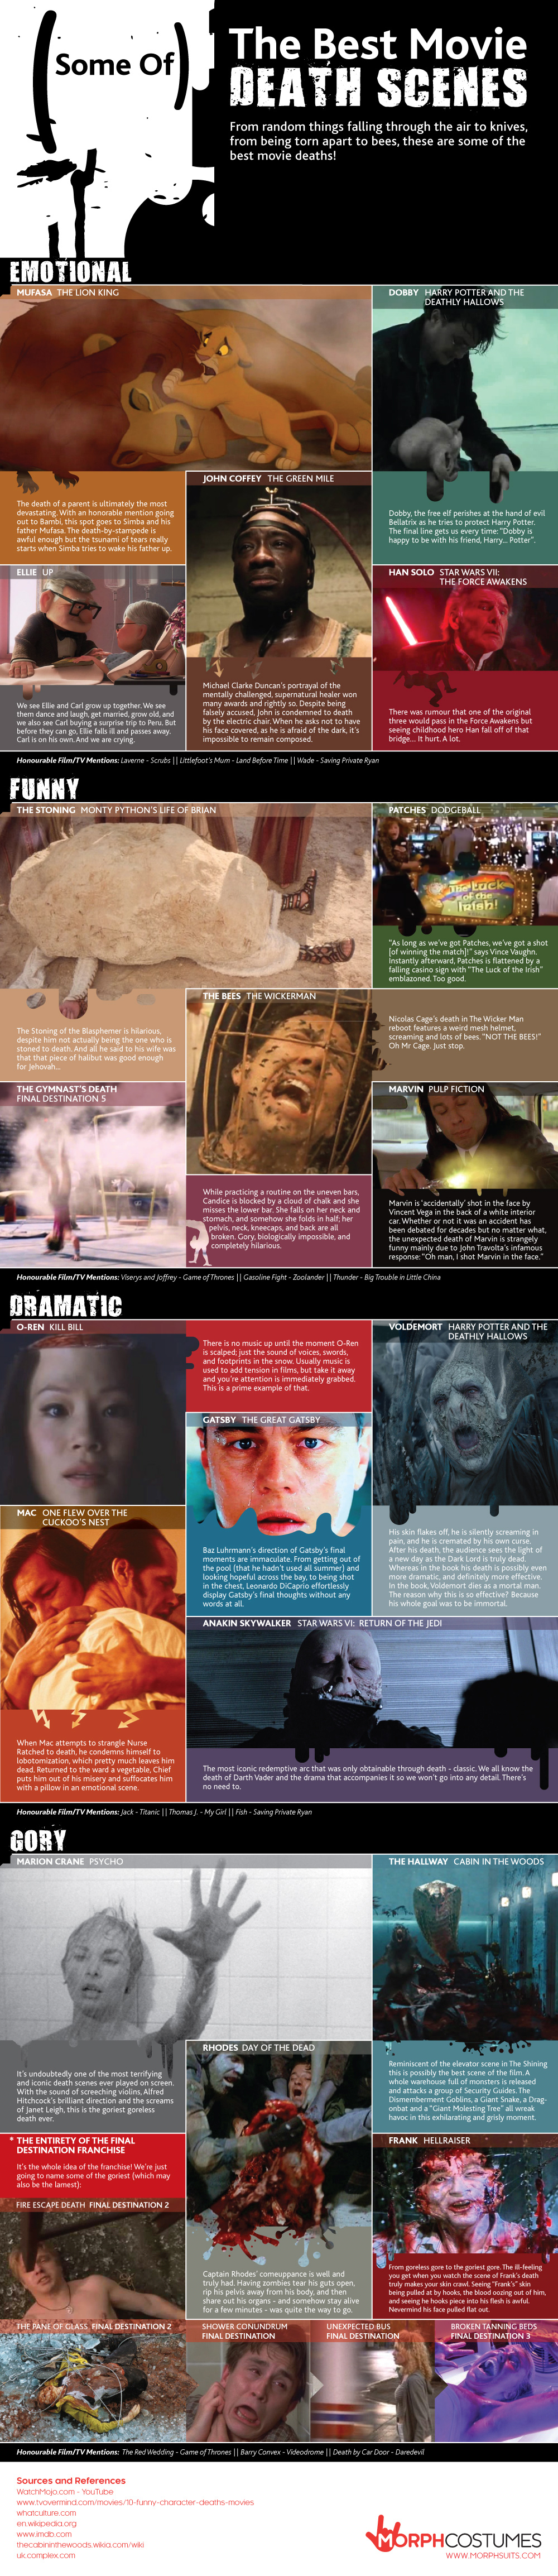 (Some Of) The Best Movie Death Scenes